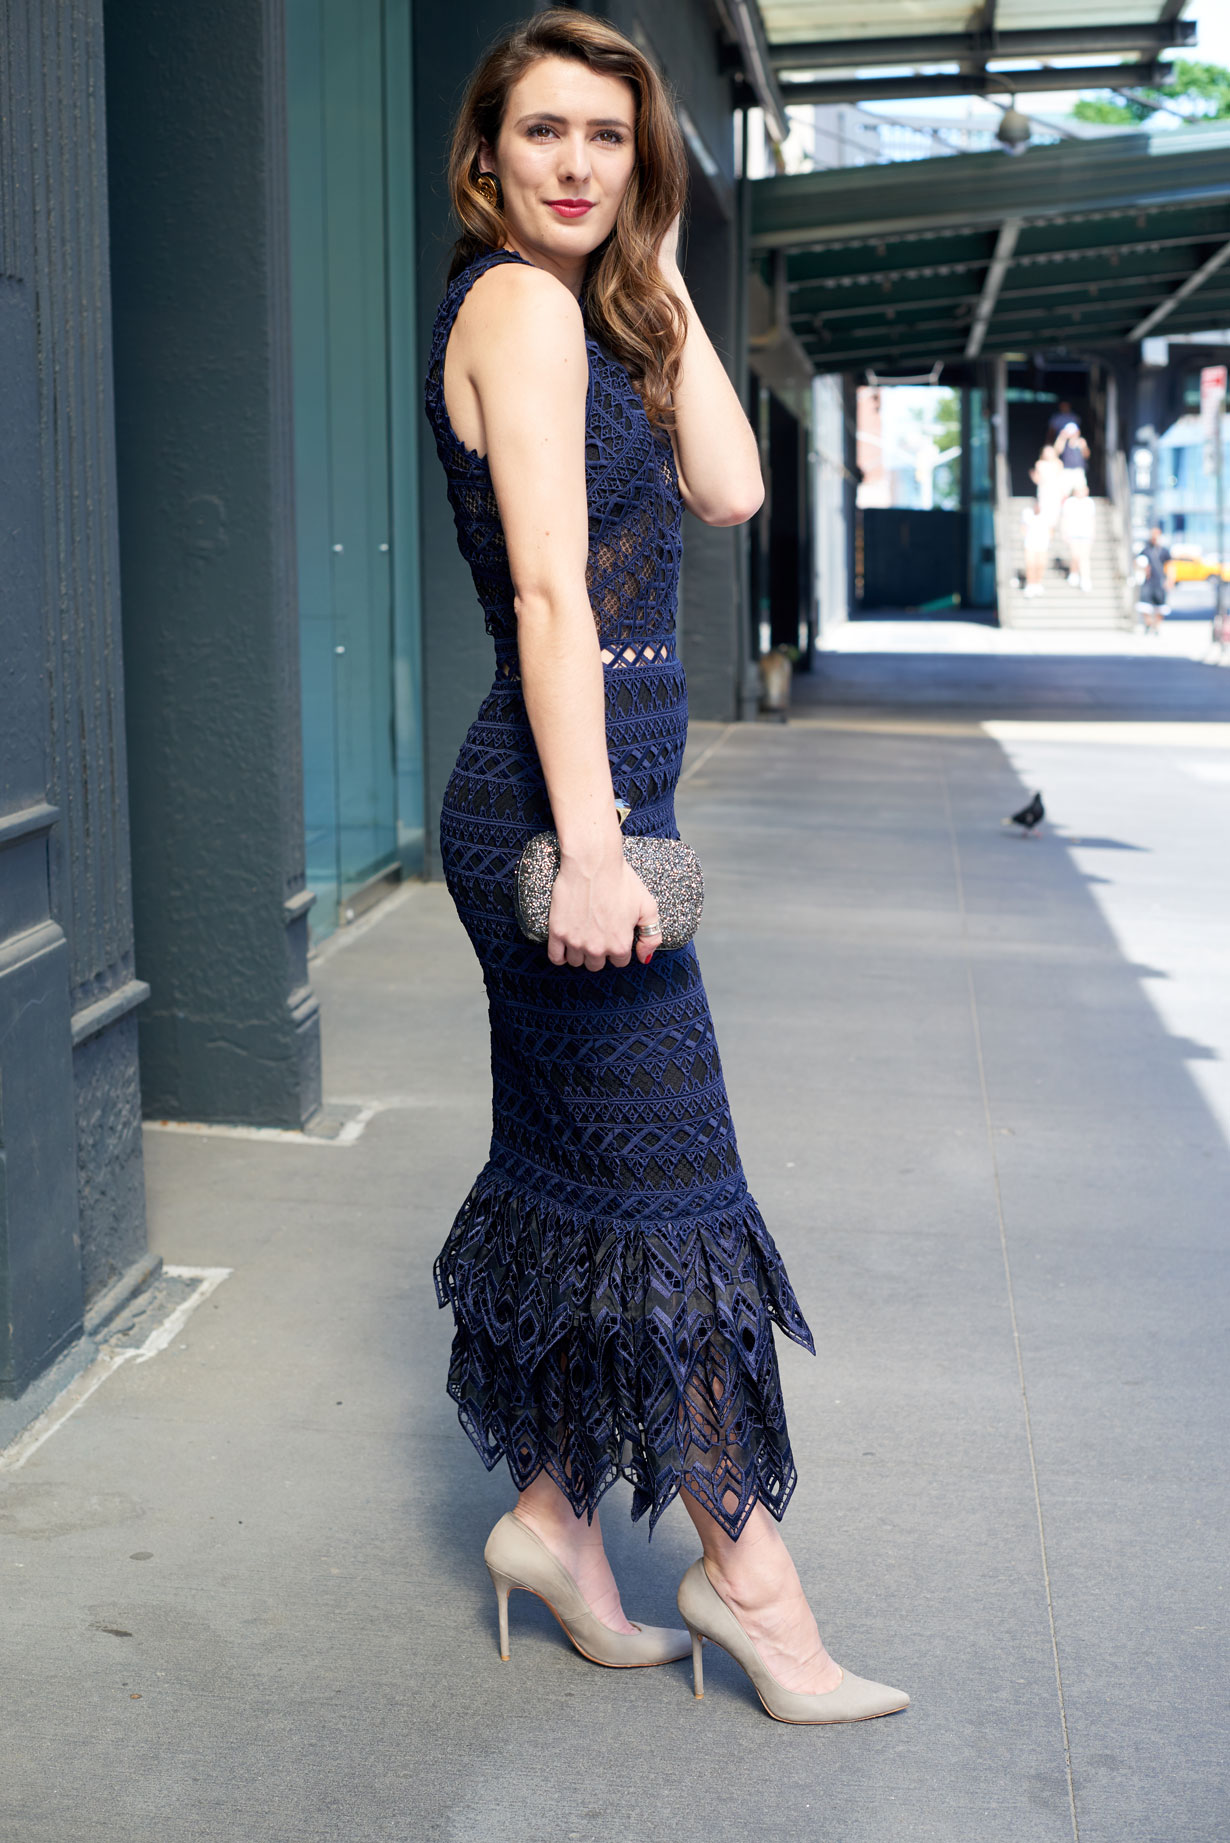 samantha metell of bonjour blue wearing Jonathan Simkhai and Stuart Weitzman